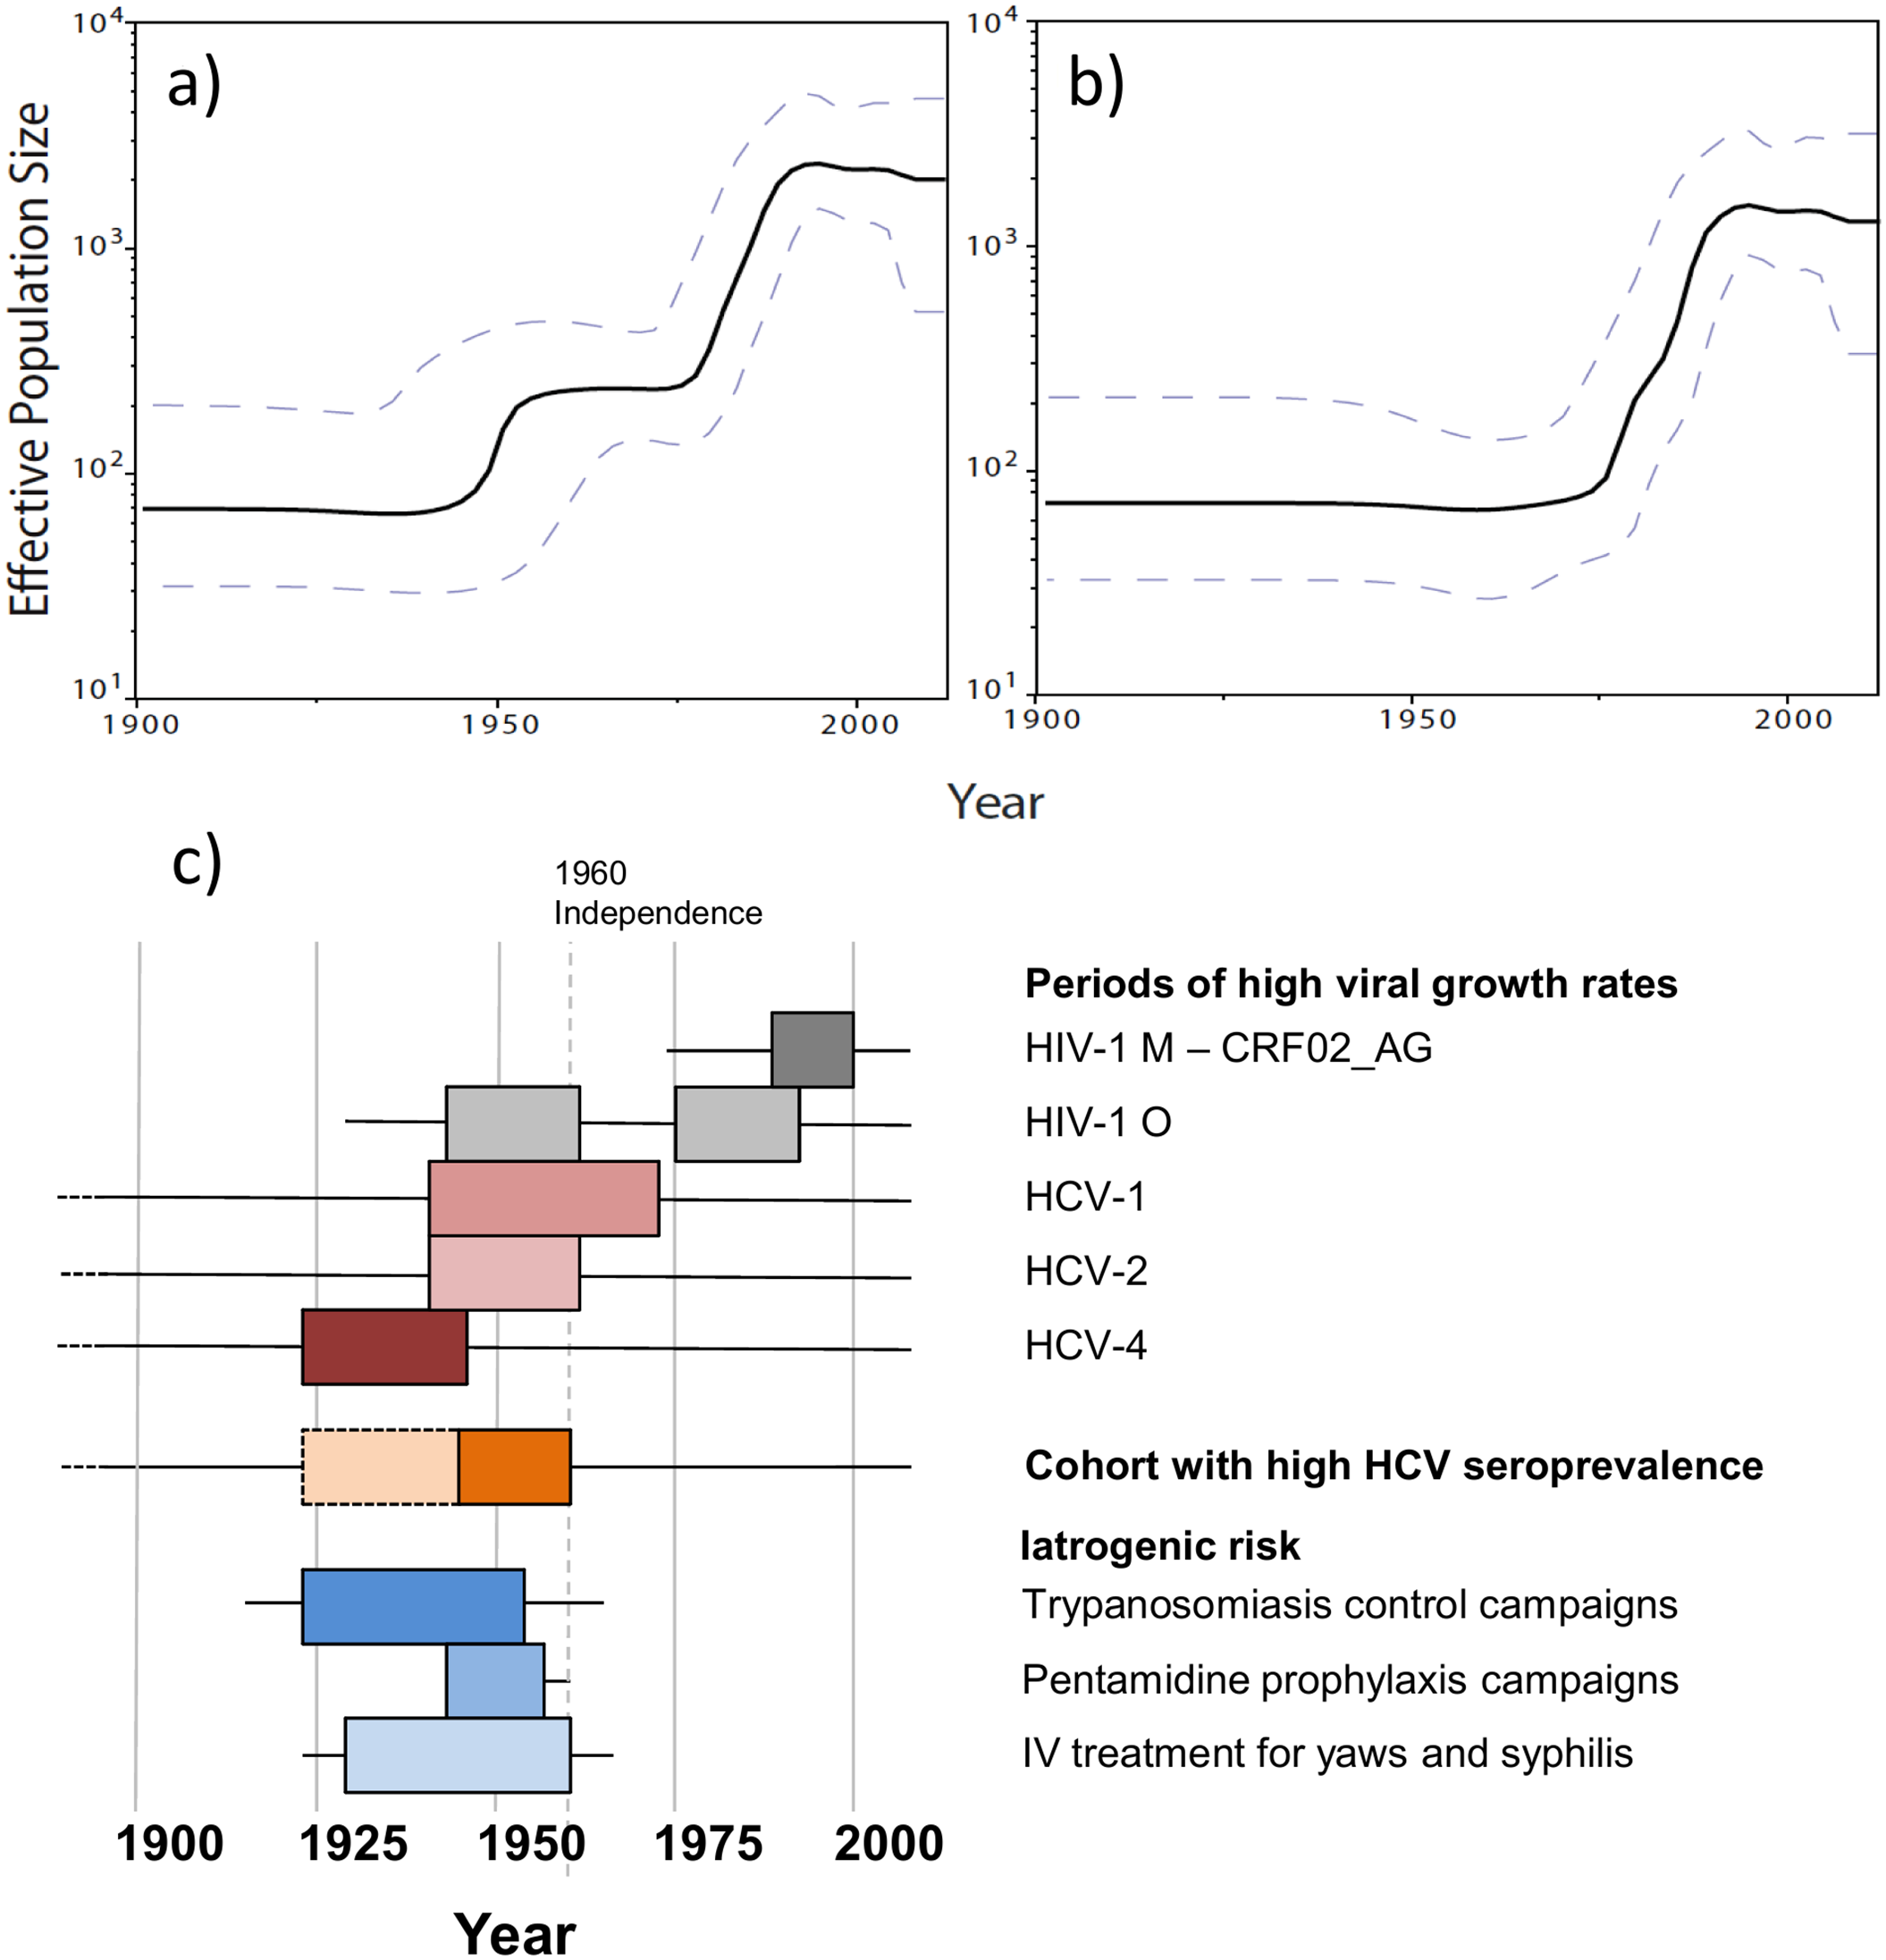 Dynamics of group O populations over time and contemporaneous contextual elements in Cameroon.